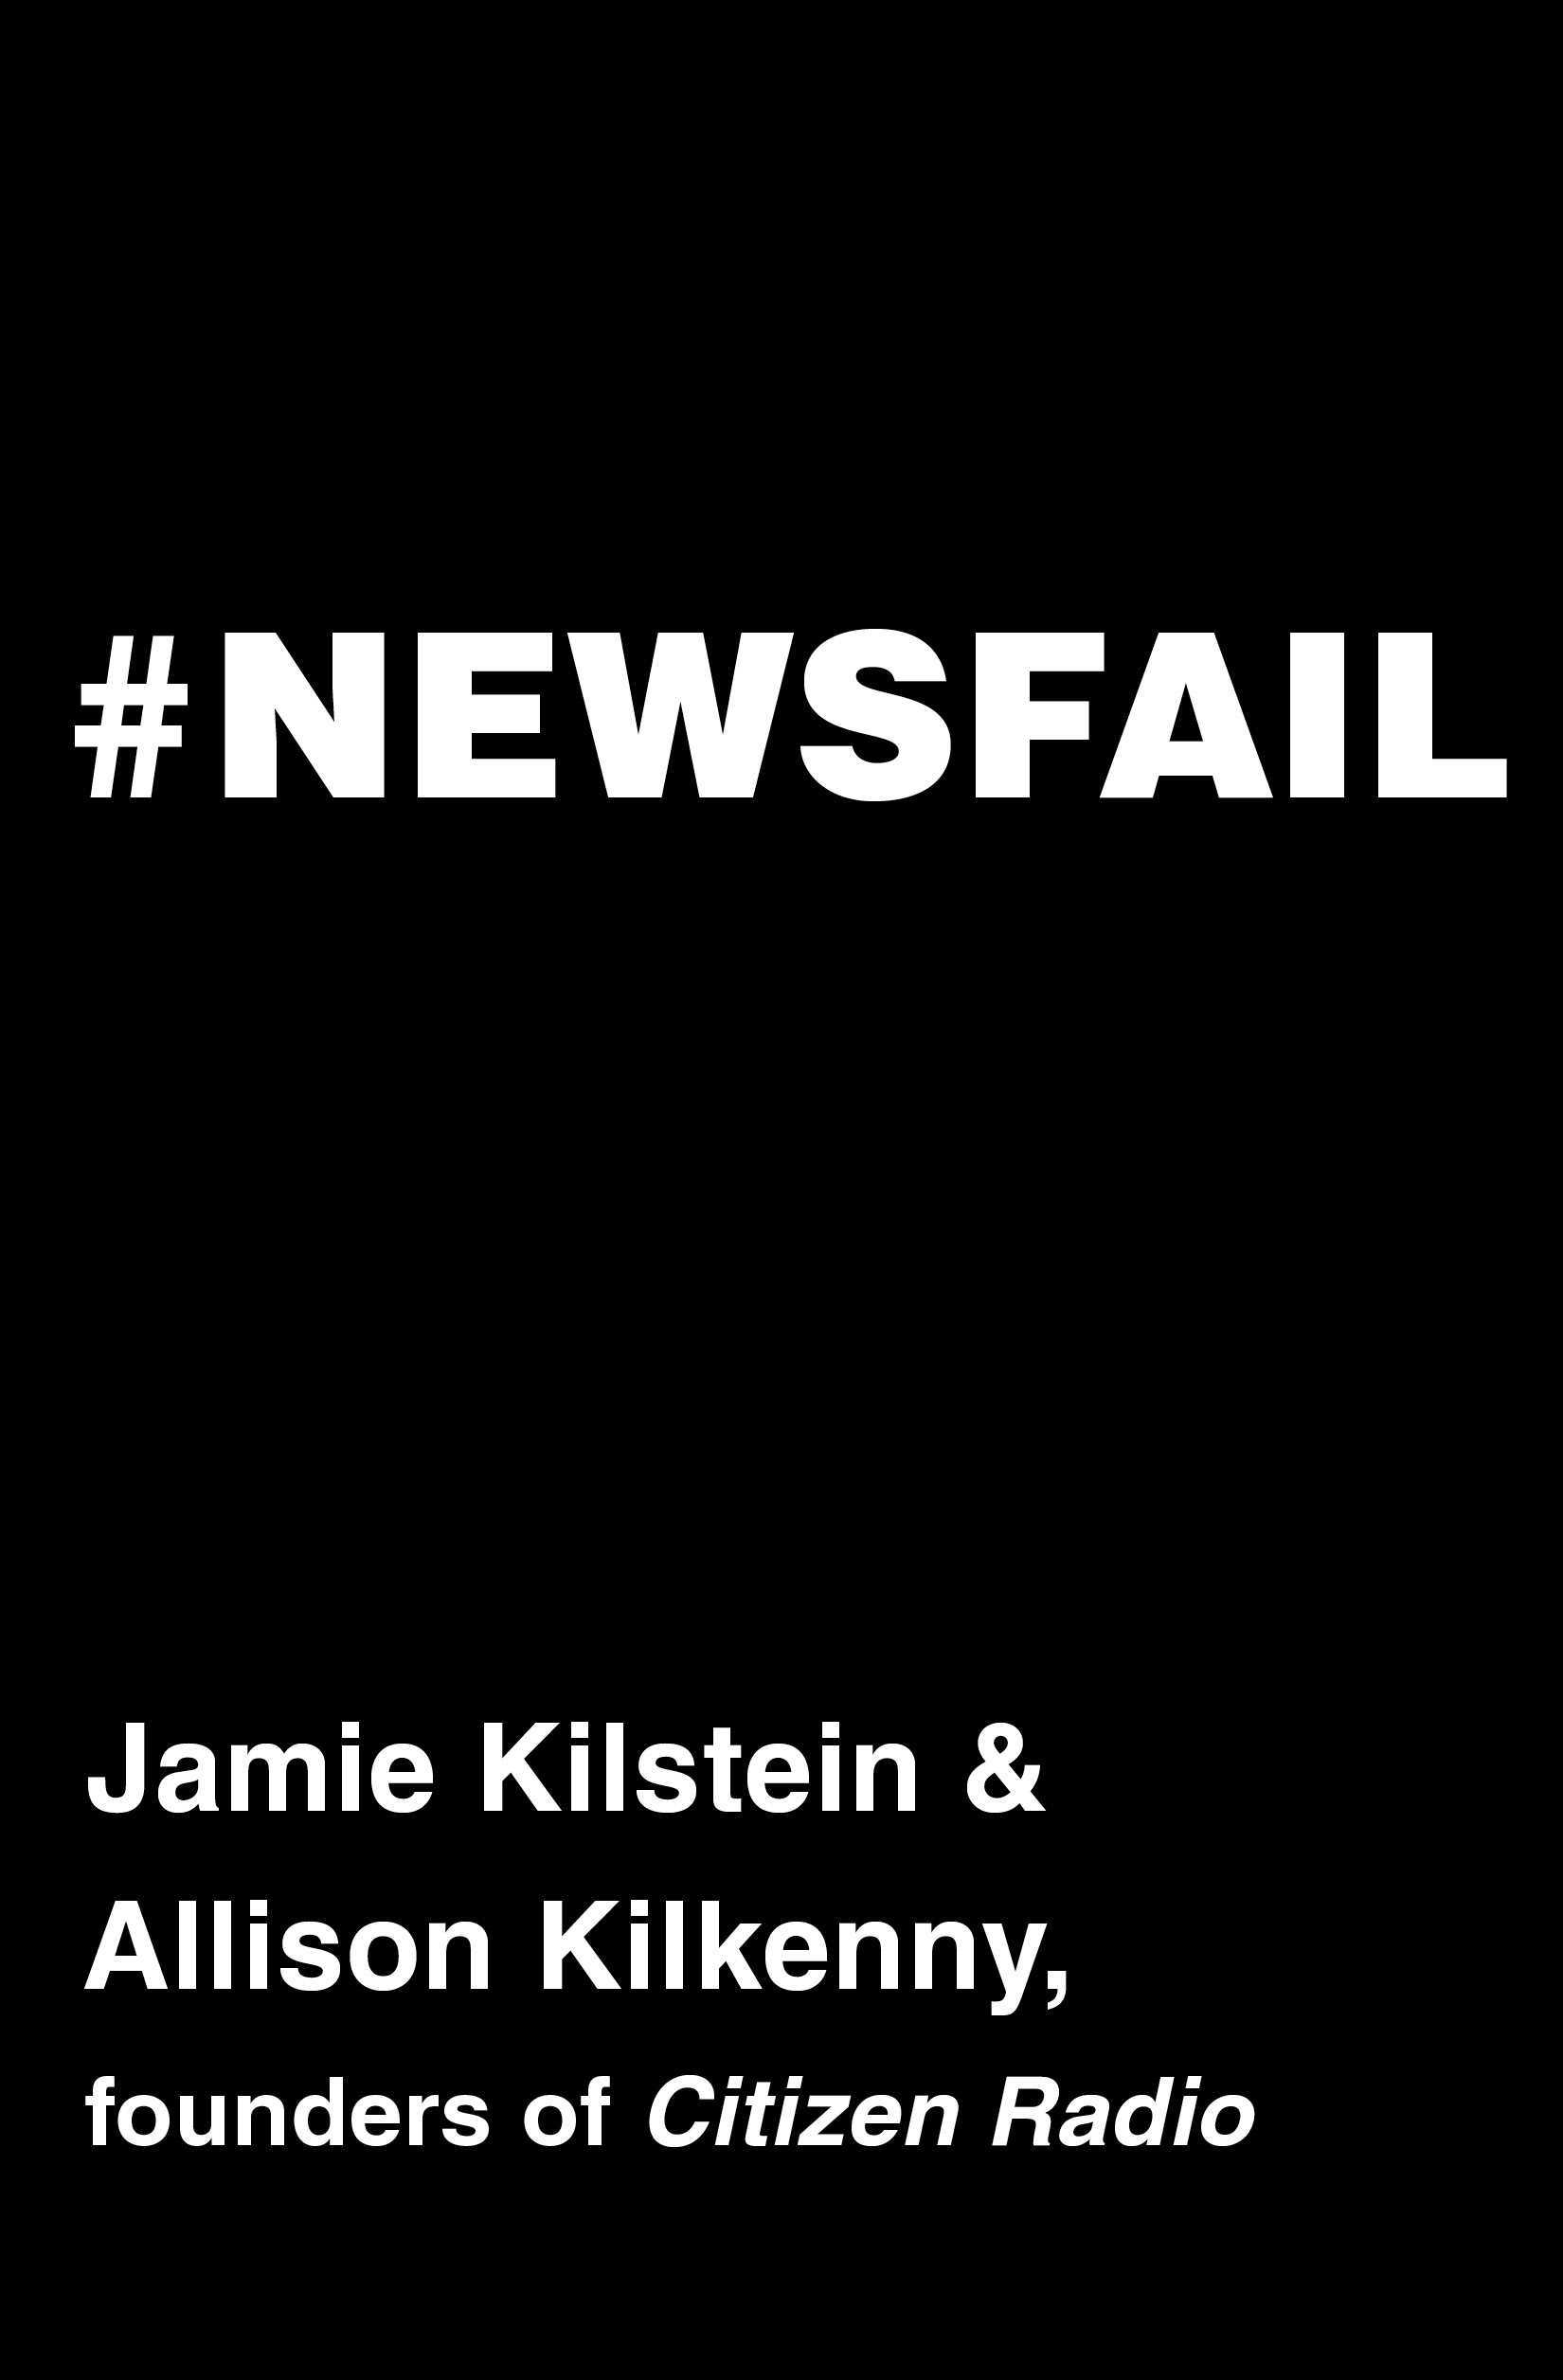 Book Launch: #NEWSFAIL by Jamie Kilstein & Allison Kilkenny